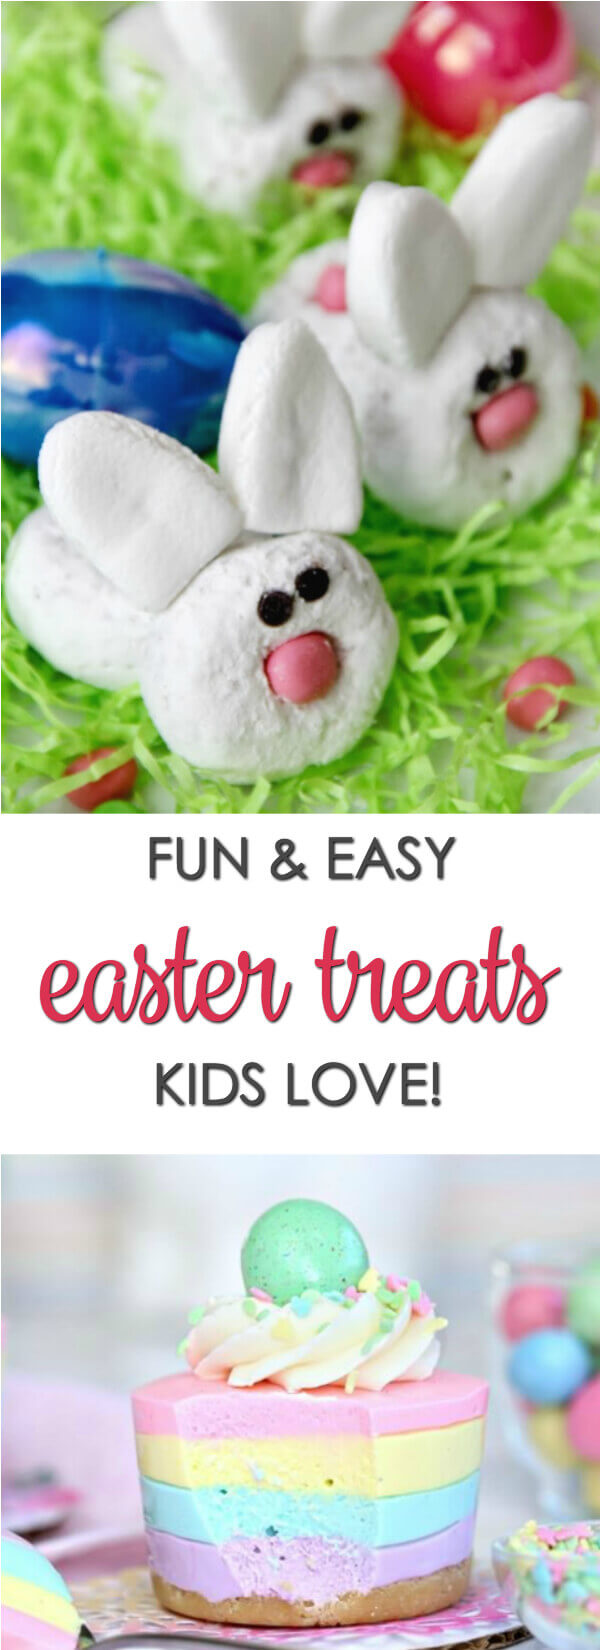 Make your Easter dinner complete with one (or two!) of these fun Easter treats recipes! They're so easy and cute, you won't want to eat them! #itisakeeper #recipe #easter